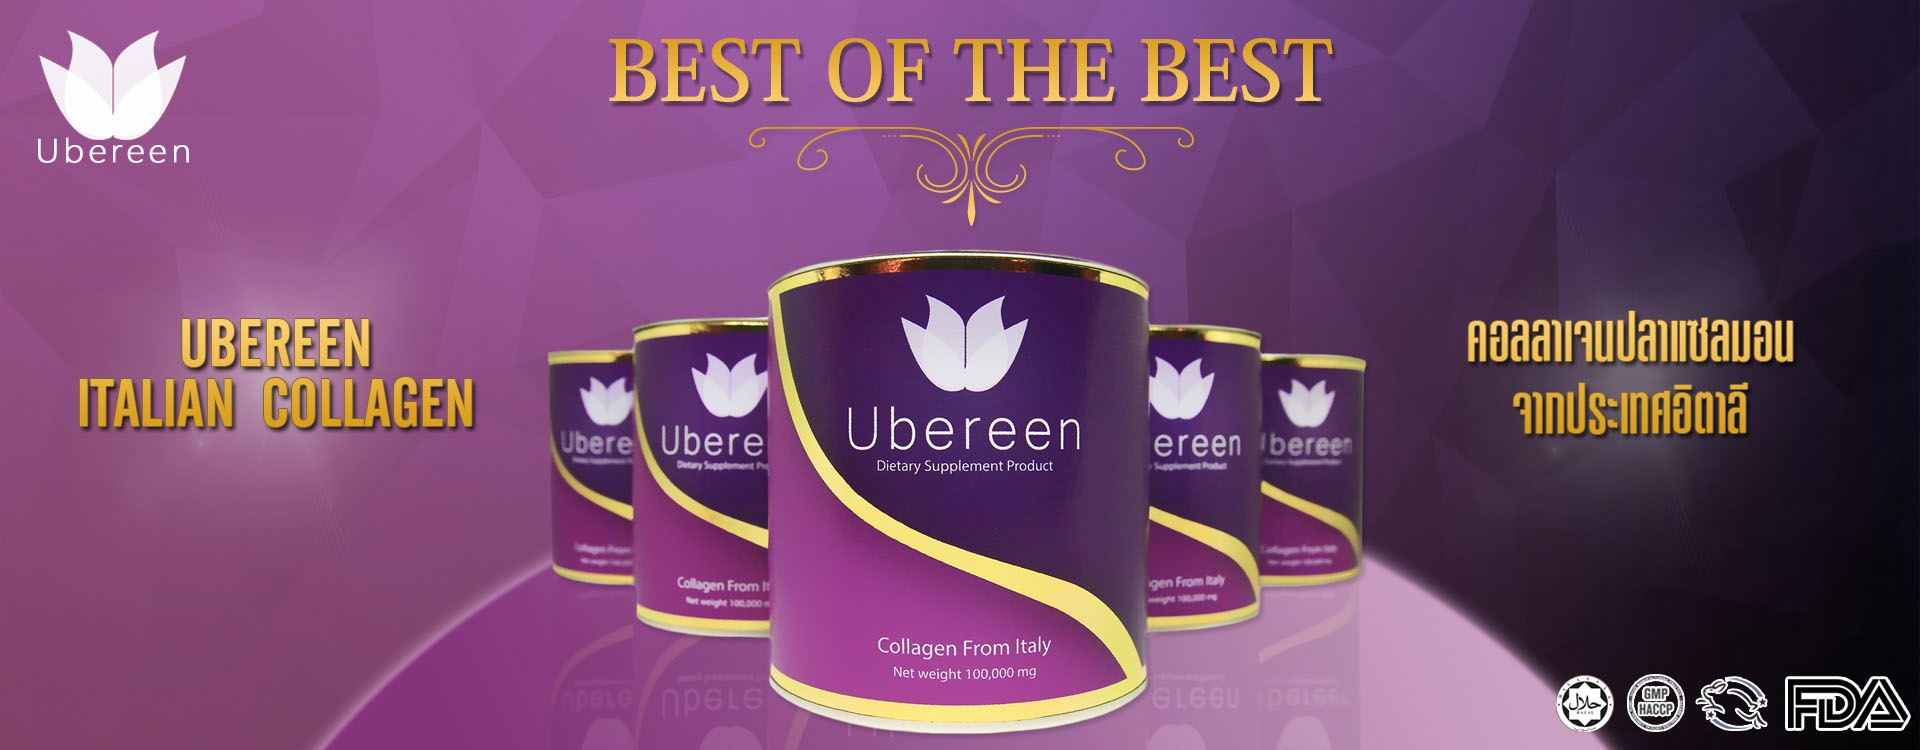 ติดต่อ Ubereen Collagen Official website